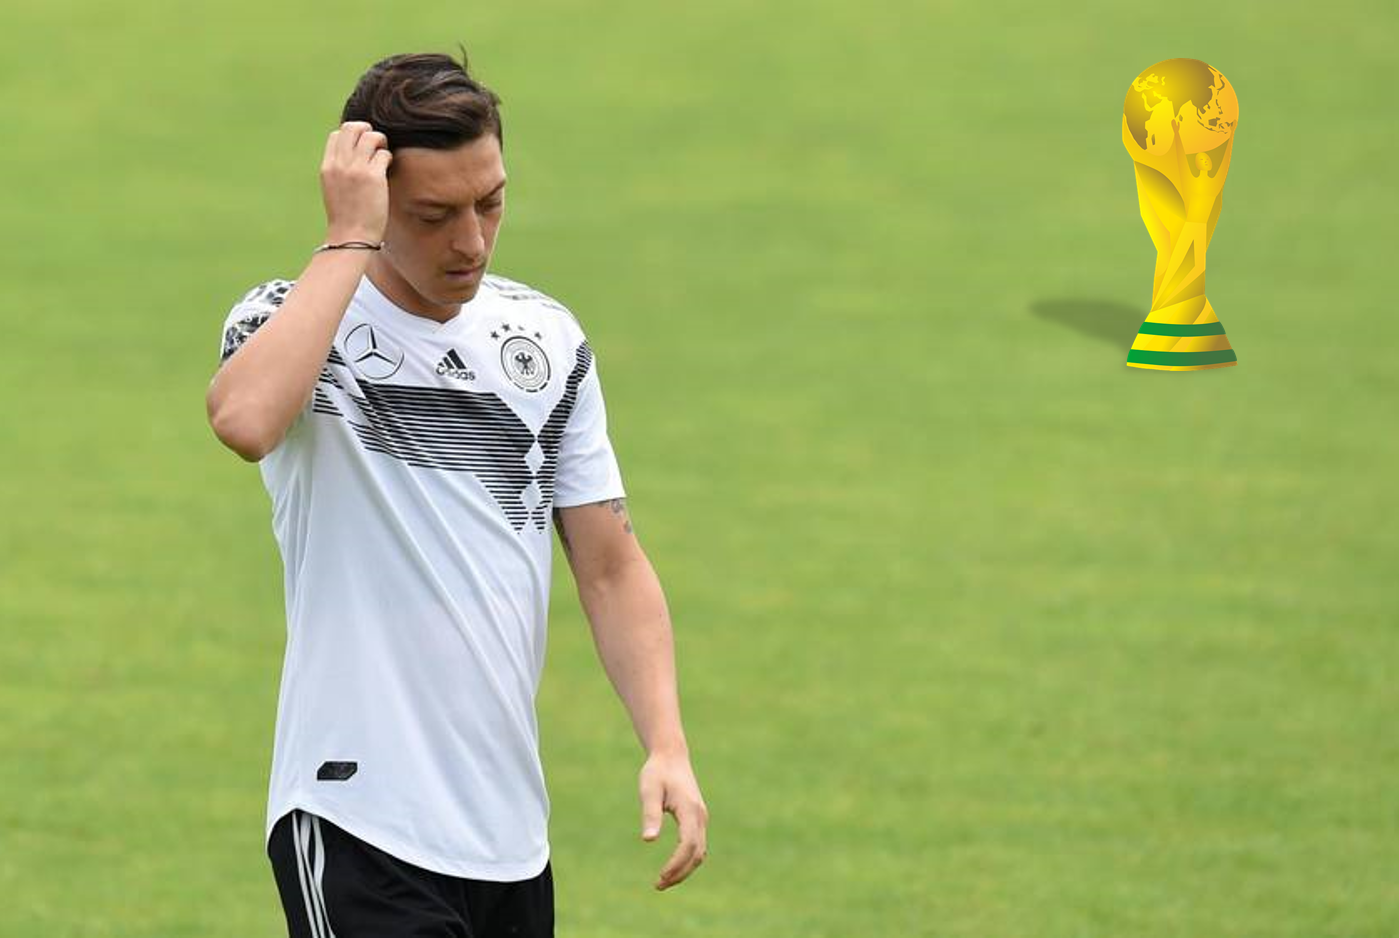 Machine Learning - World Cup